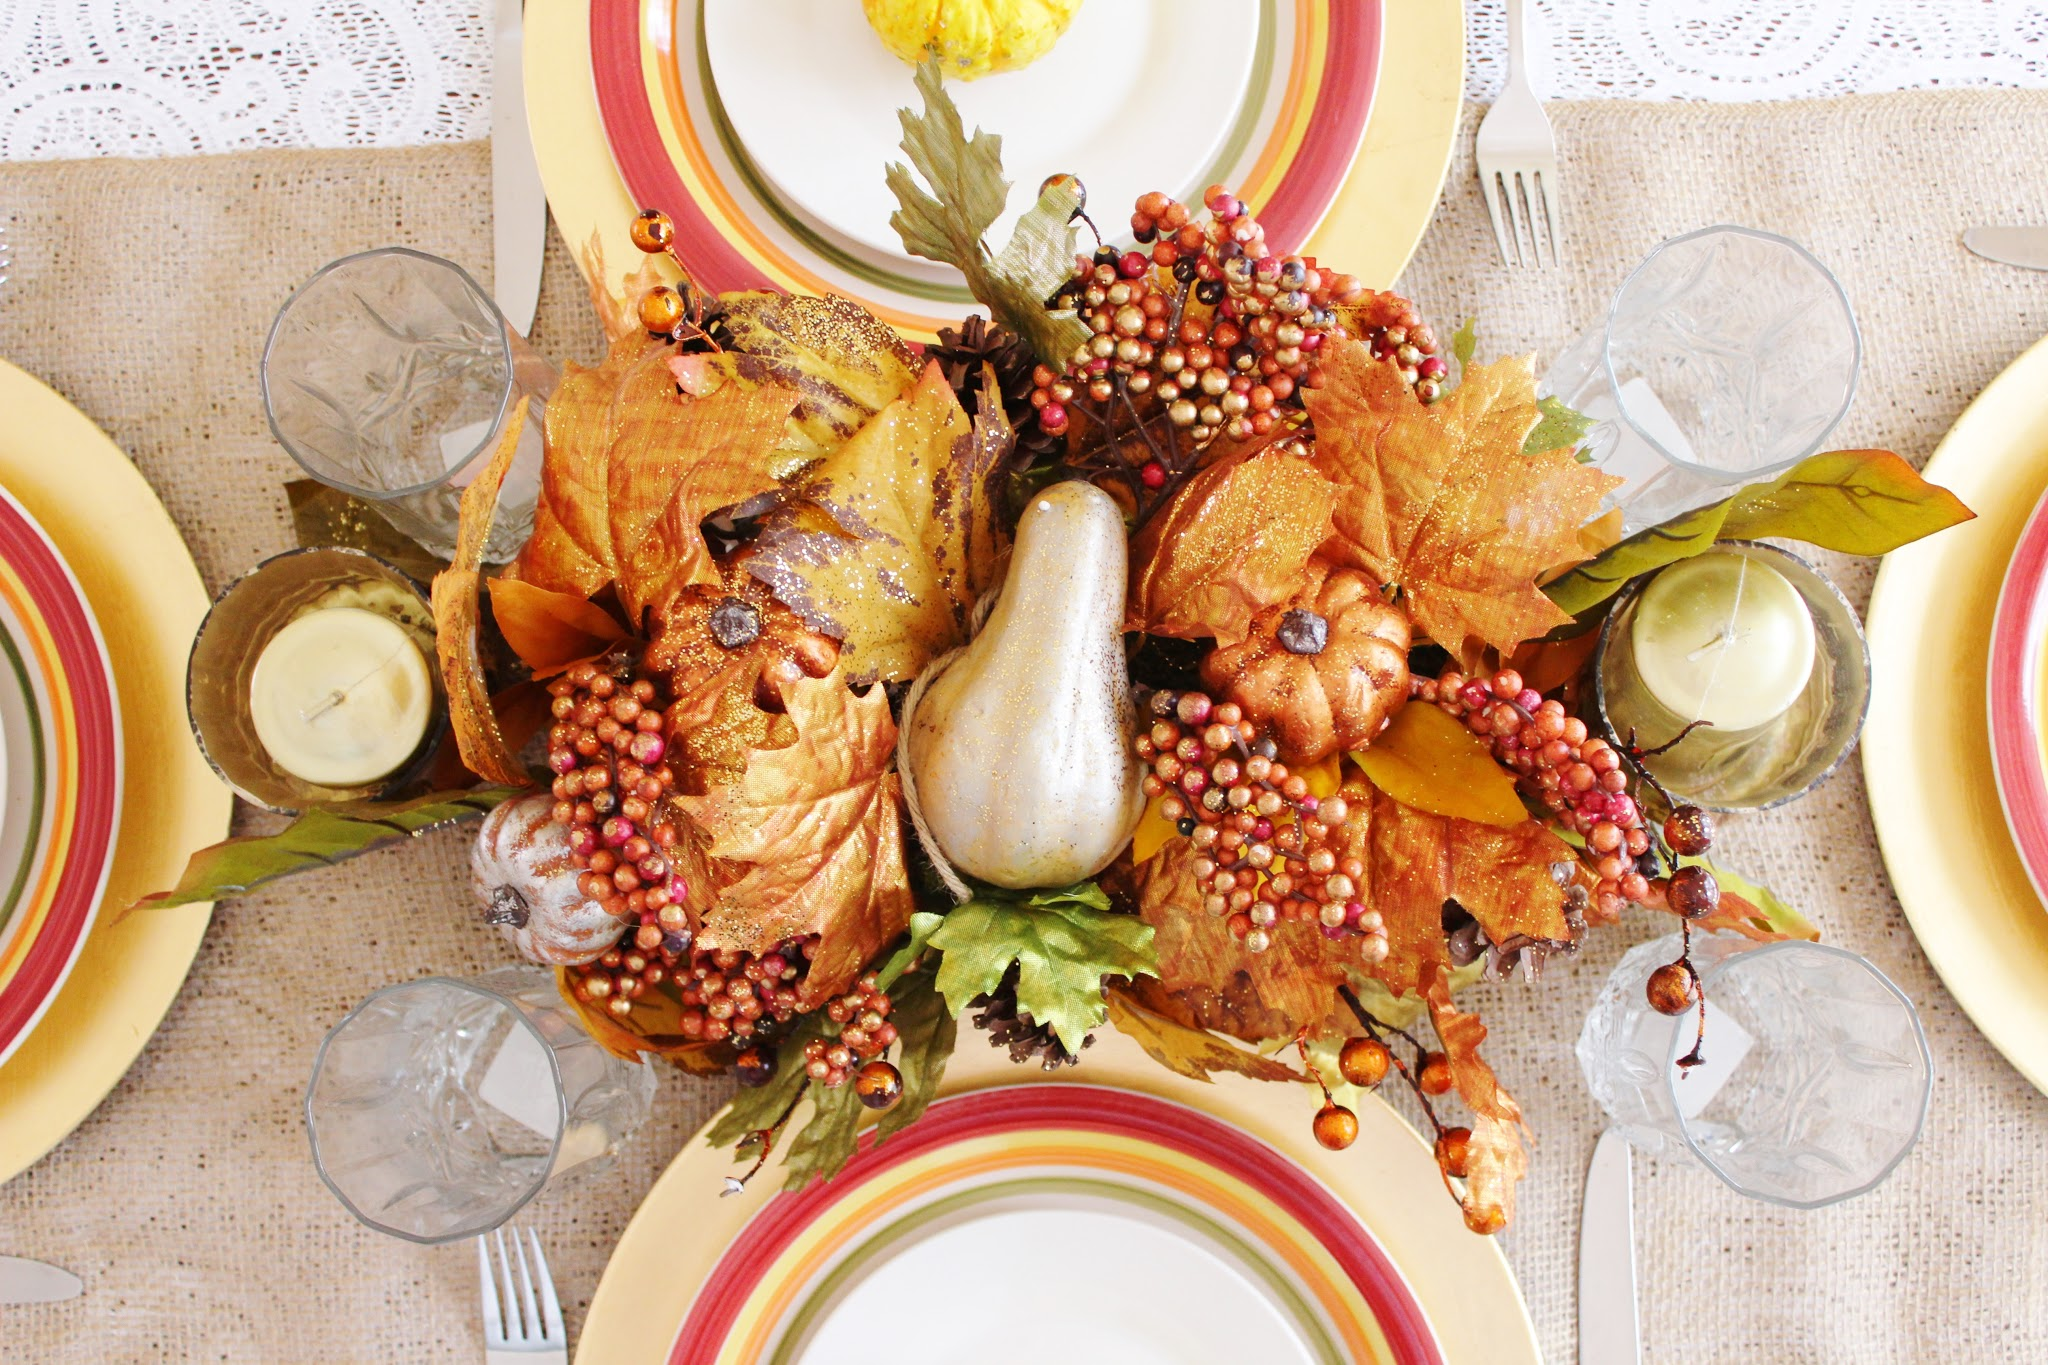 How to set a table for Thanksgiving. Thanksgiving table. Thanksgiving table setting ideas. Traditional Thanksgiving table setting. Thanksgiving table setting with food. DIY Thanksgiving table settings. Thanksgiving table with food. Modern thanksgiving table setting. Inexpensive Thanksgiving table decorations. #thanksgiving #holiday #table #home #decor #diy #tablescape #fall